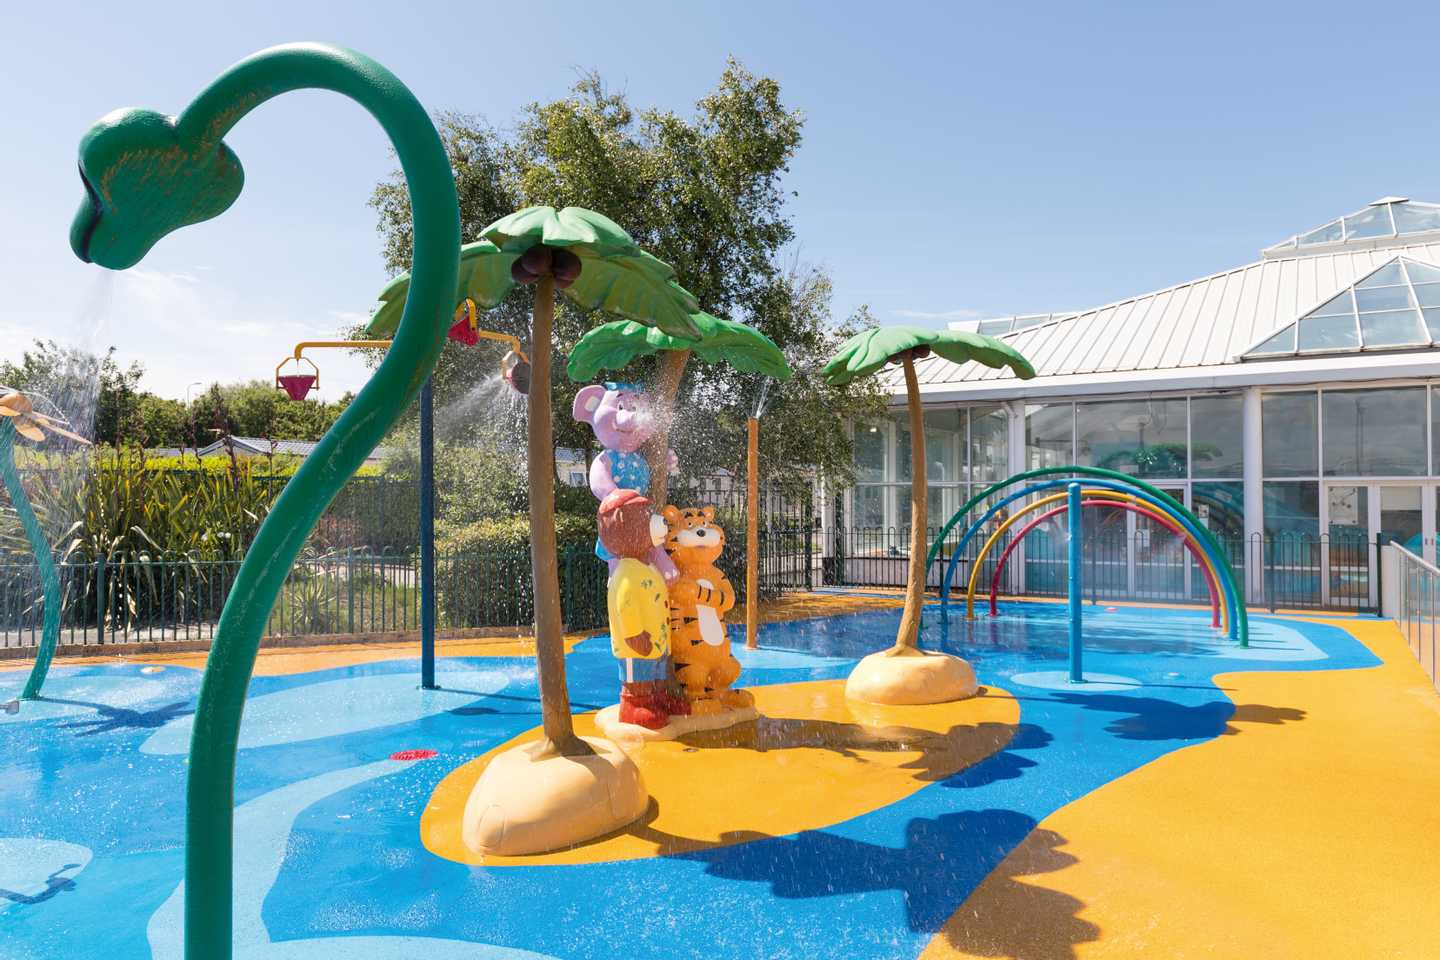 Outdoor SplashZone with water features